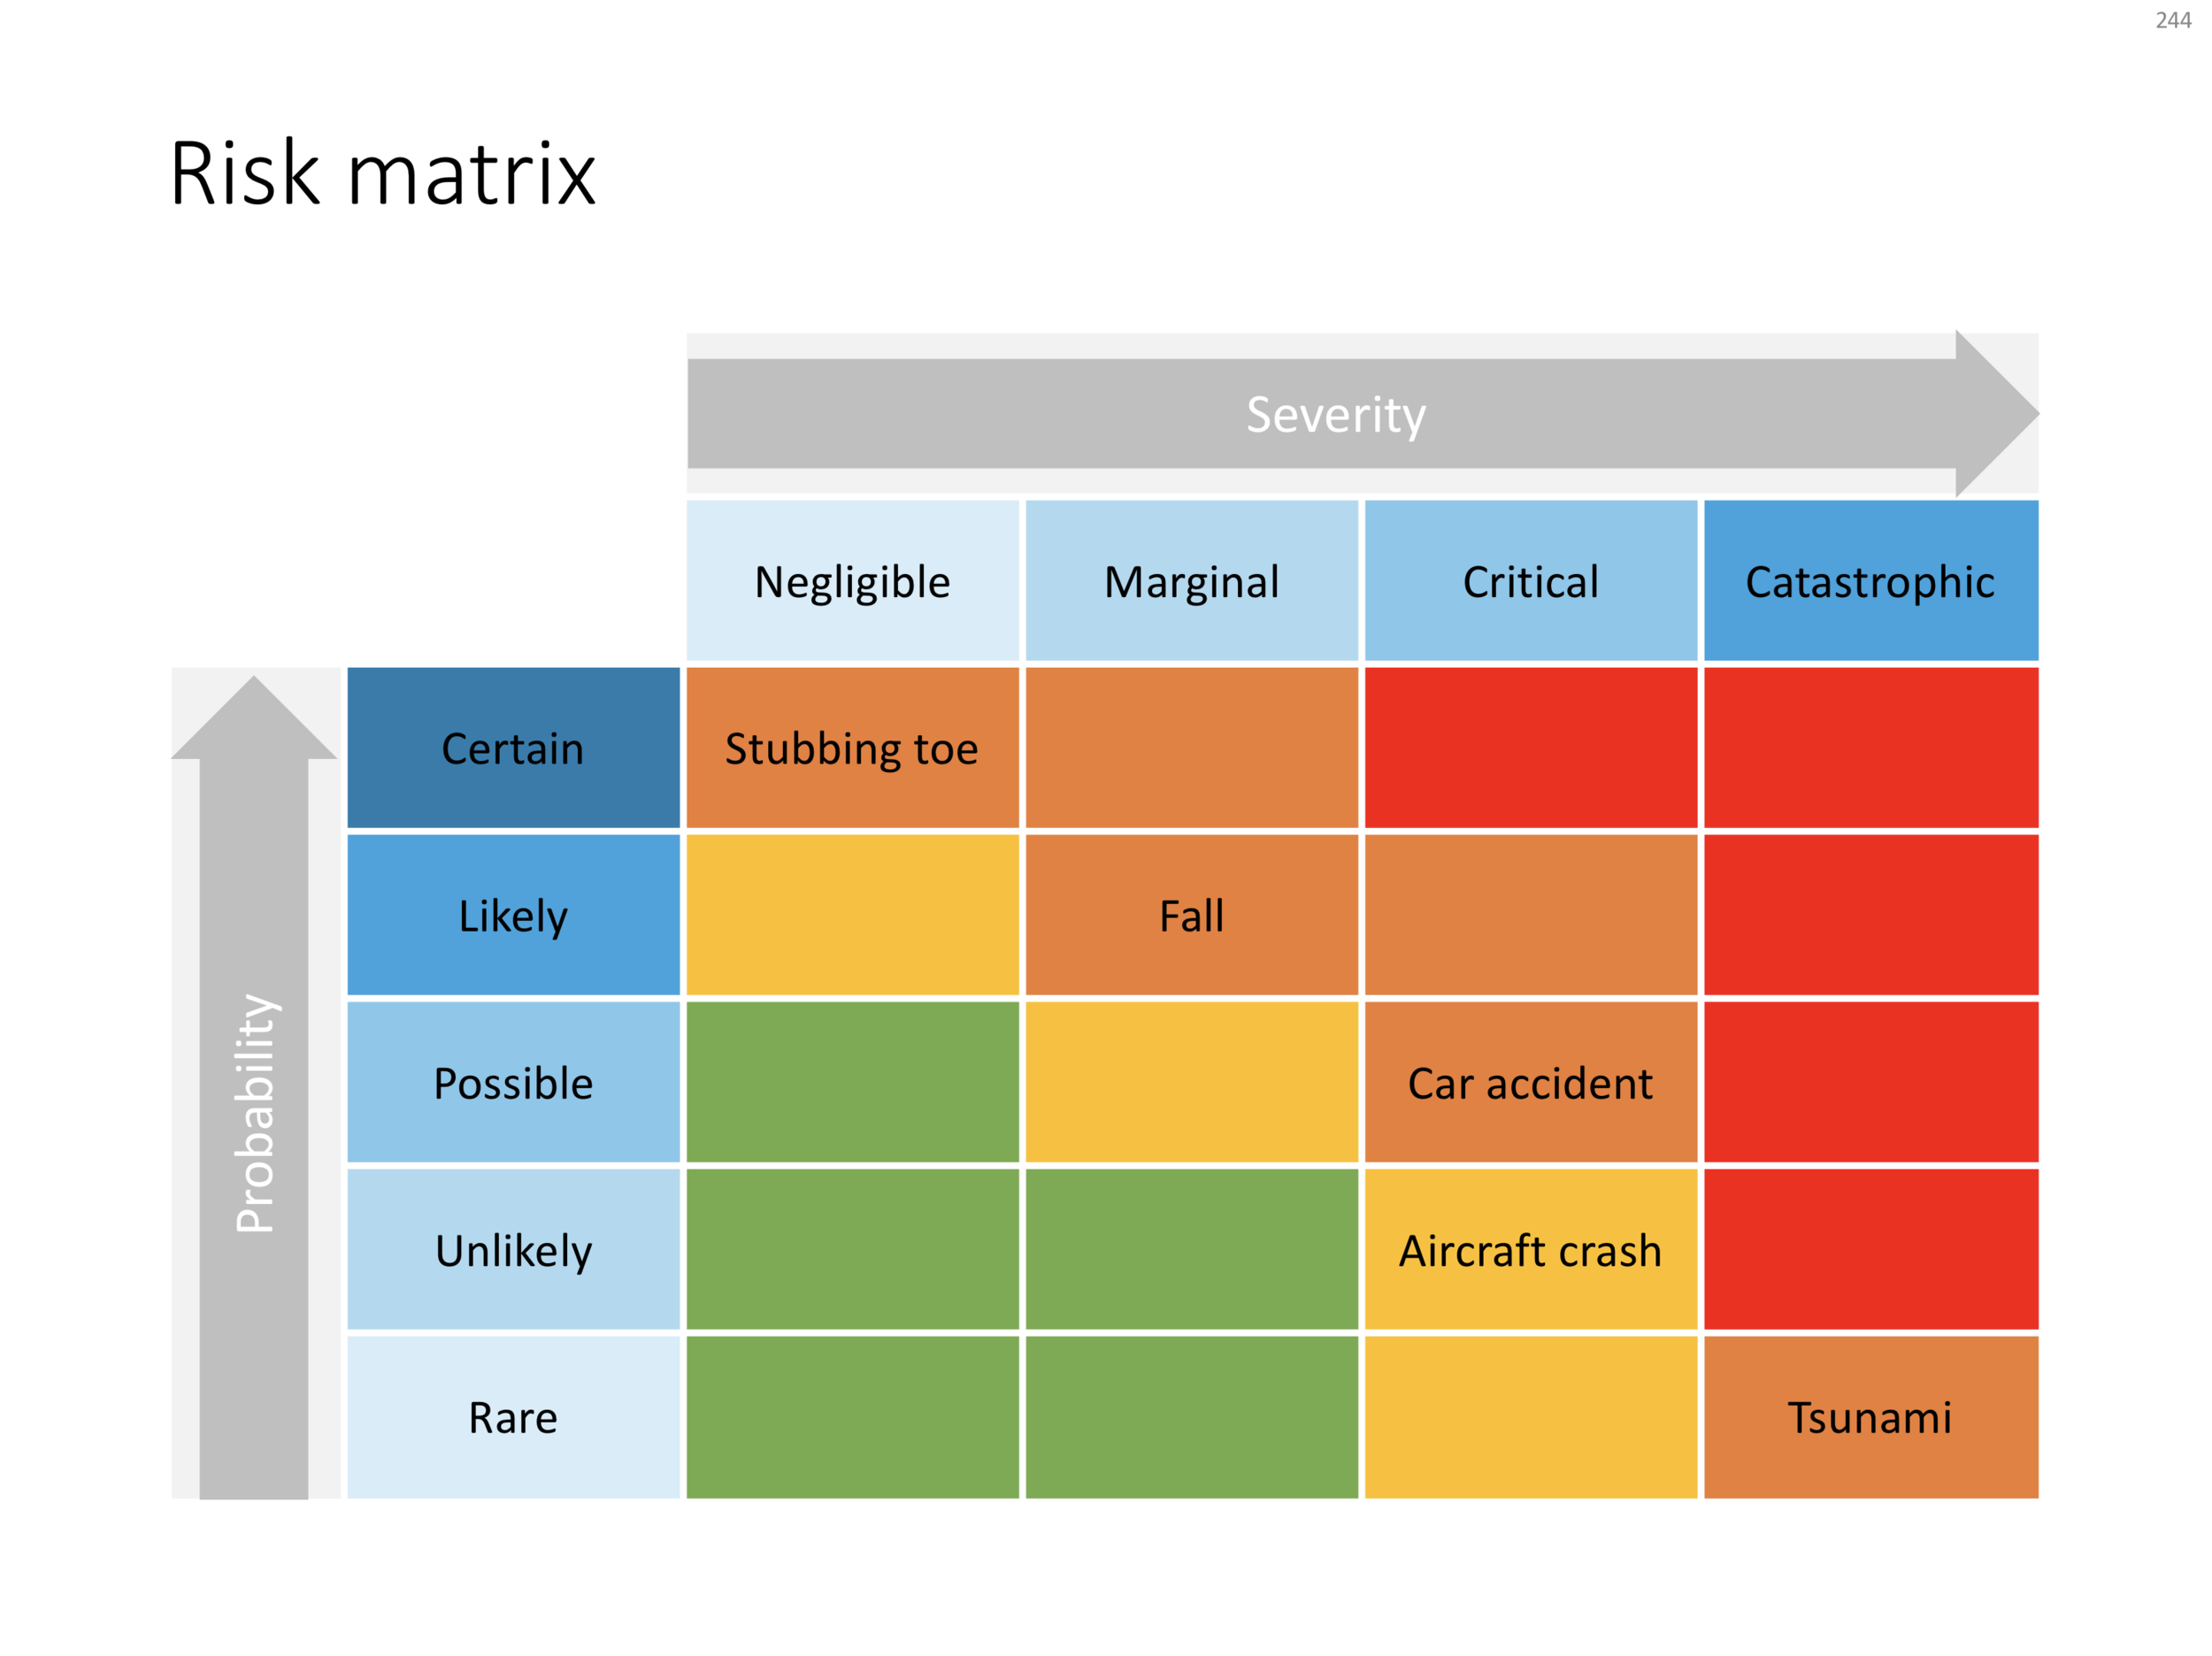 244 - Risk matrix in PowerPoint.png